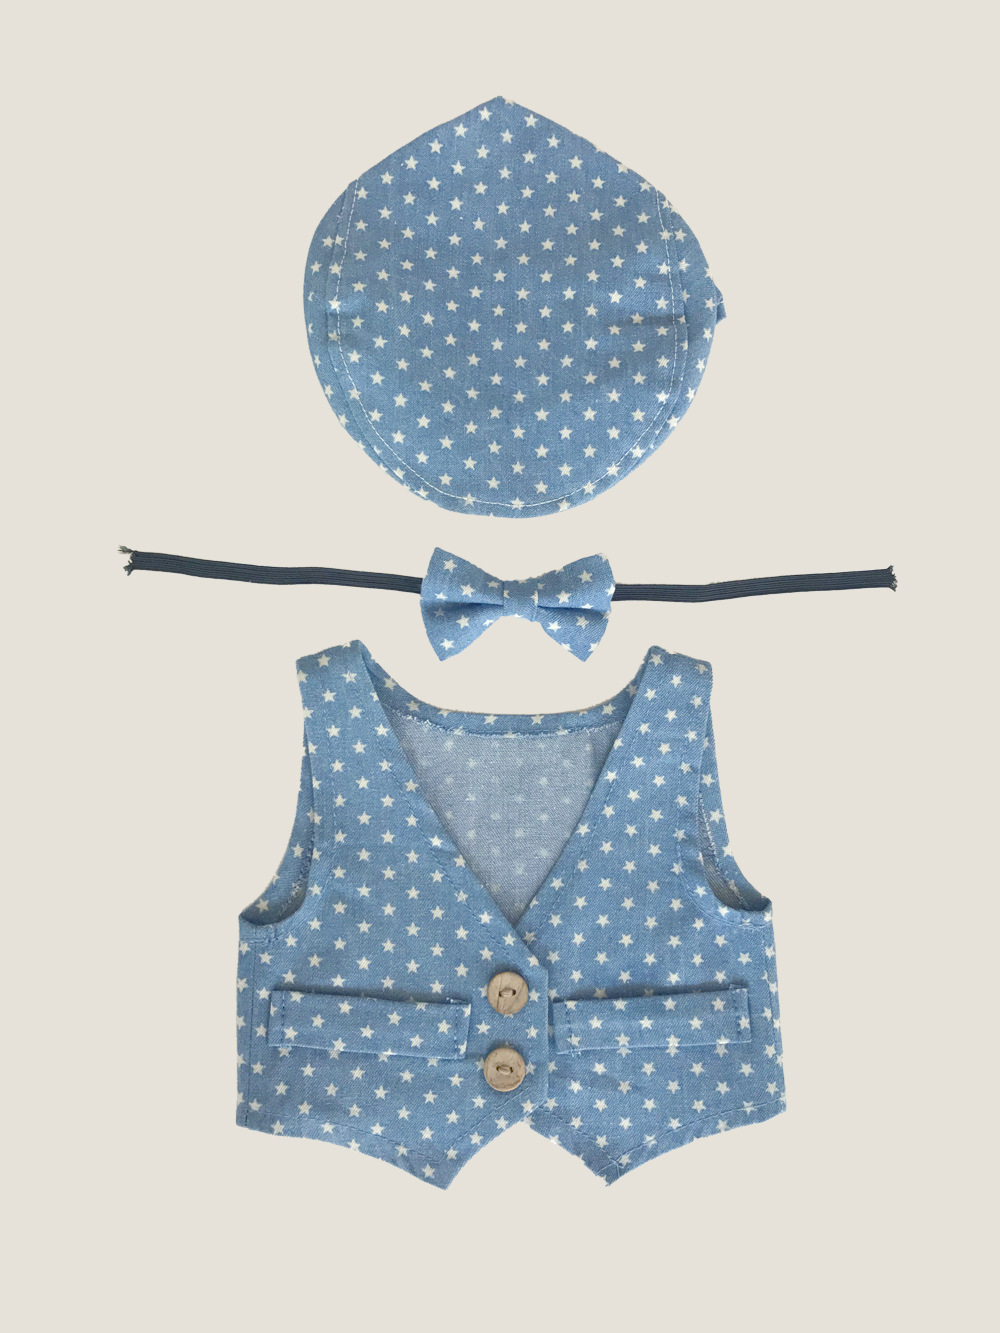 Newborn Children Photography Clothing Baby Boys Girls Children Sets Photo Vest Bow Hat 3pcs Suits Infant Cotton Costume hsp188 cool newborn baby girls boys crochet knit costume photo photography prop outfits cute baby clothes sets